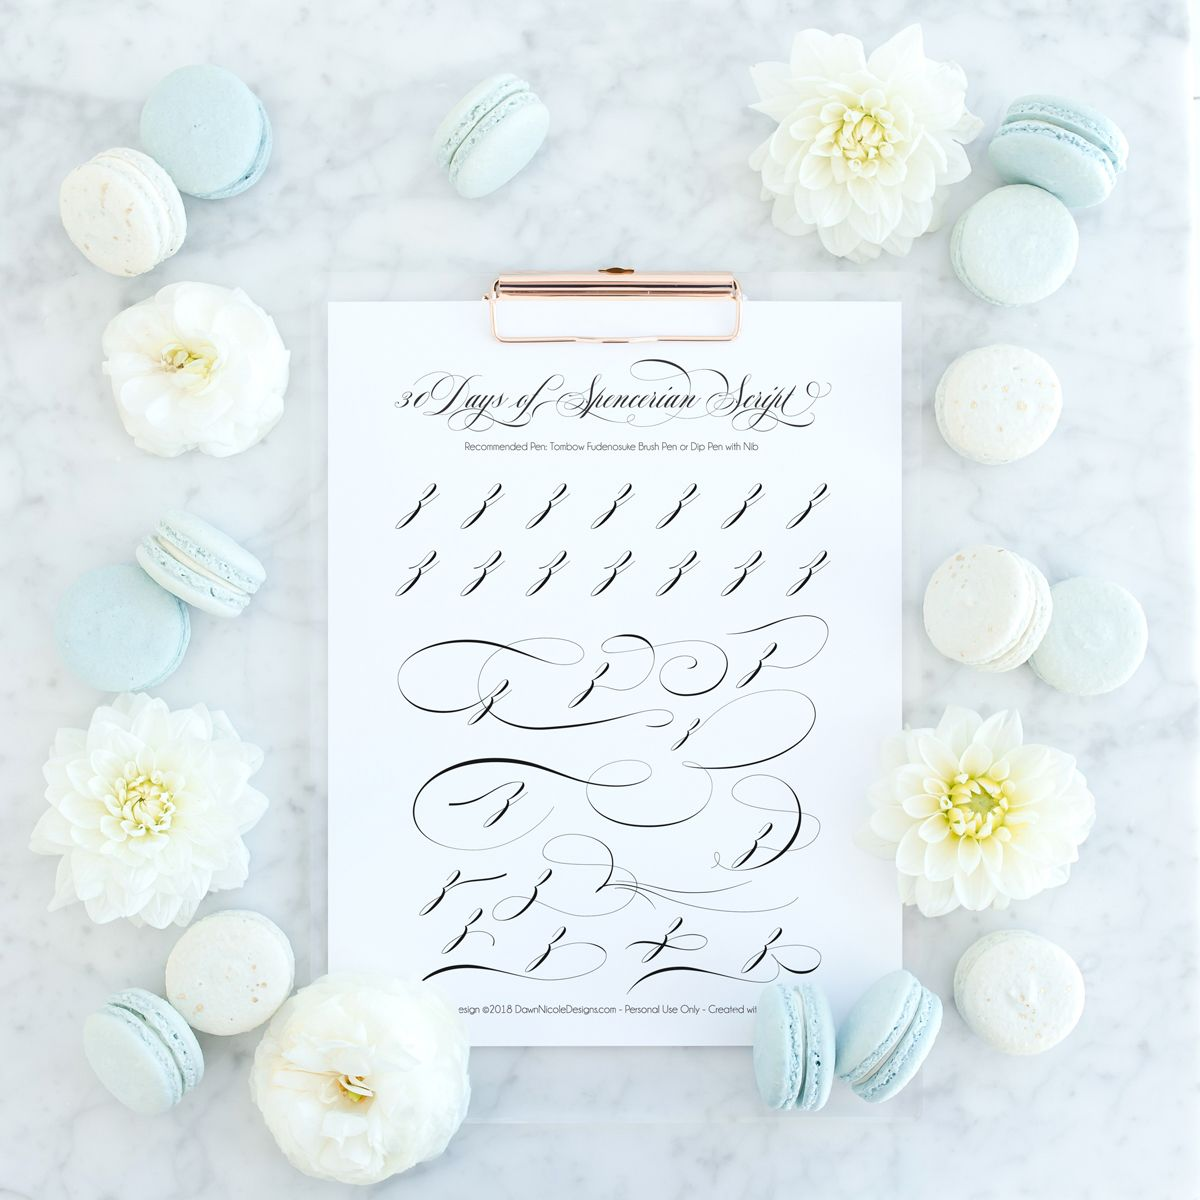 Spencerian Script Style Letter Z Worksheets By Dawn